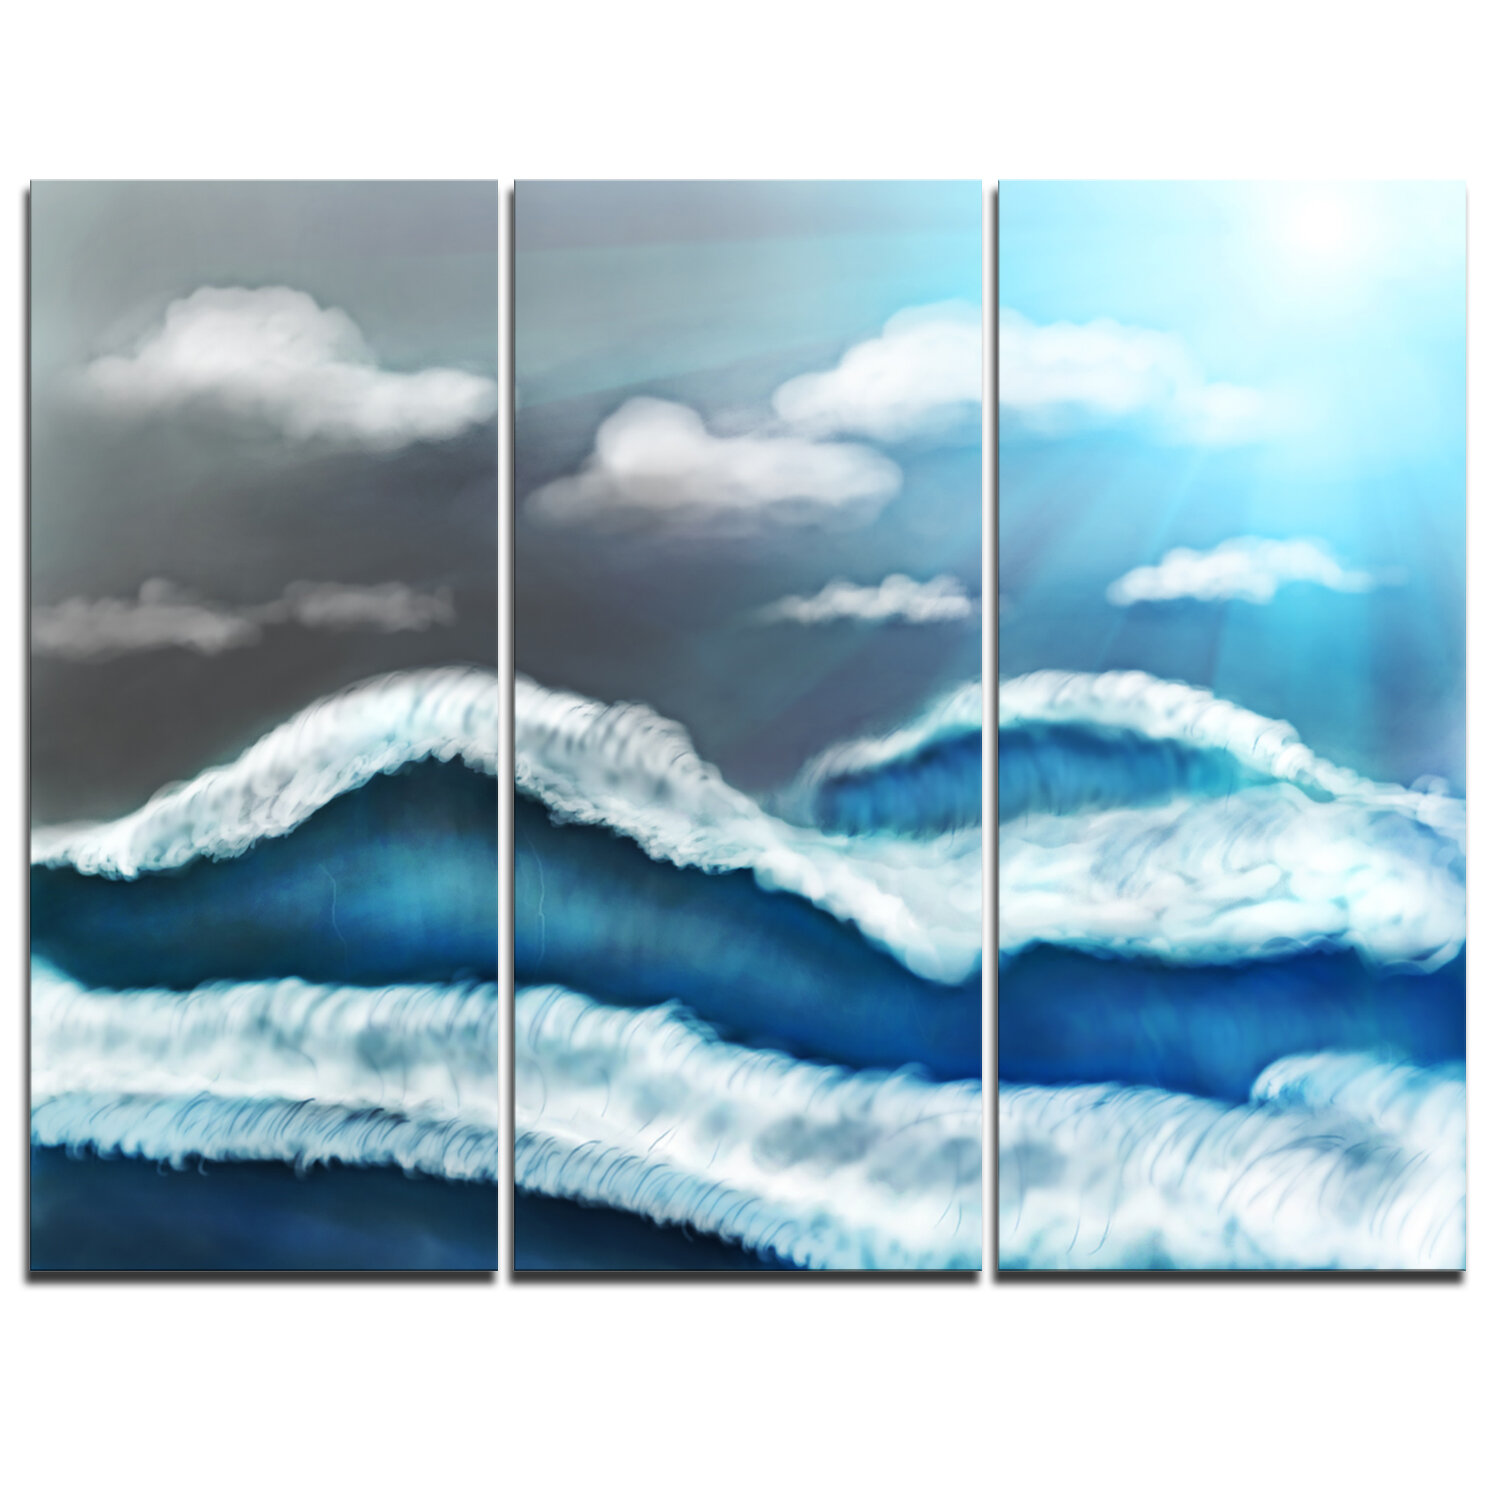 Designart Blue Sky With Clouds 3 Piece Graphic Art On Wrapped Canvas Set Wayfair